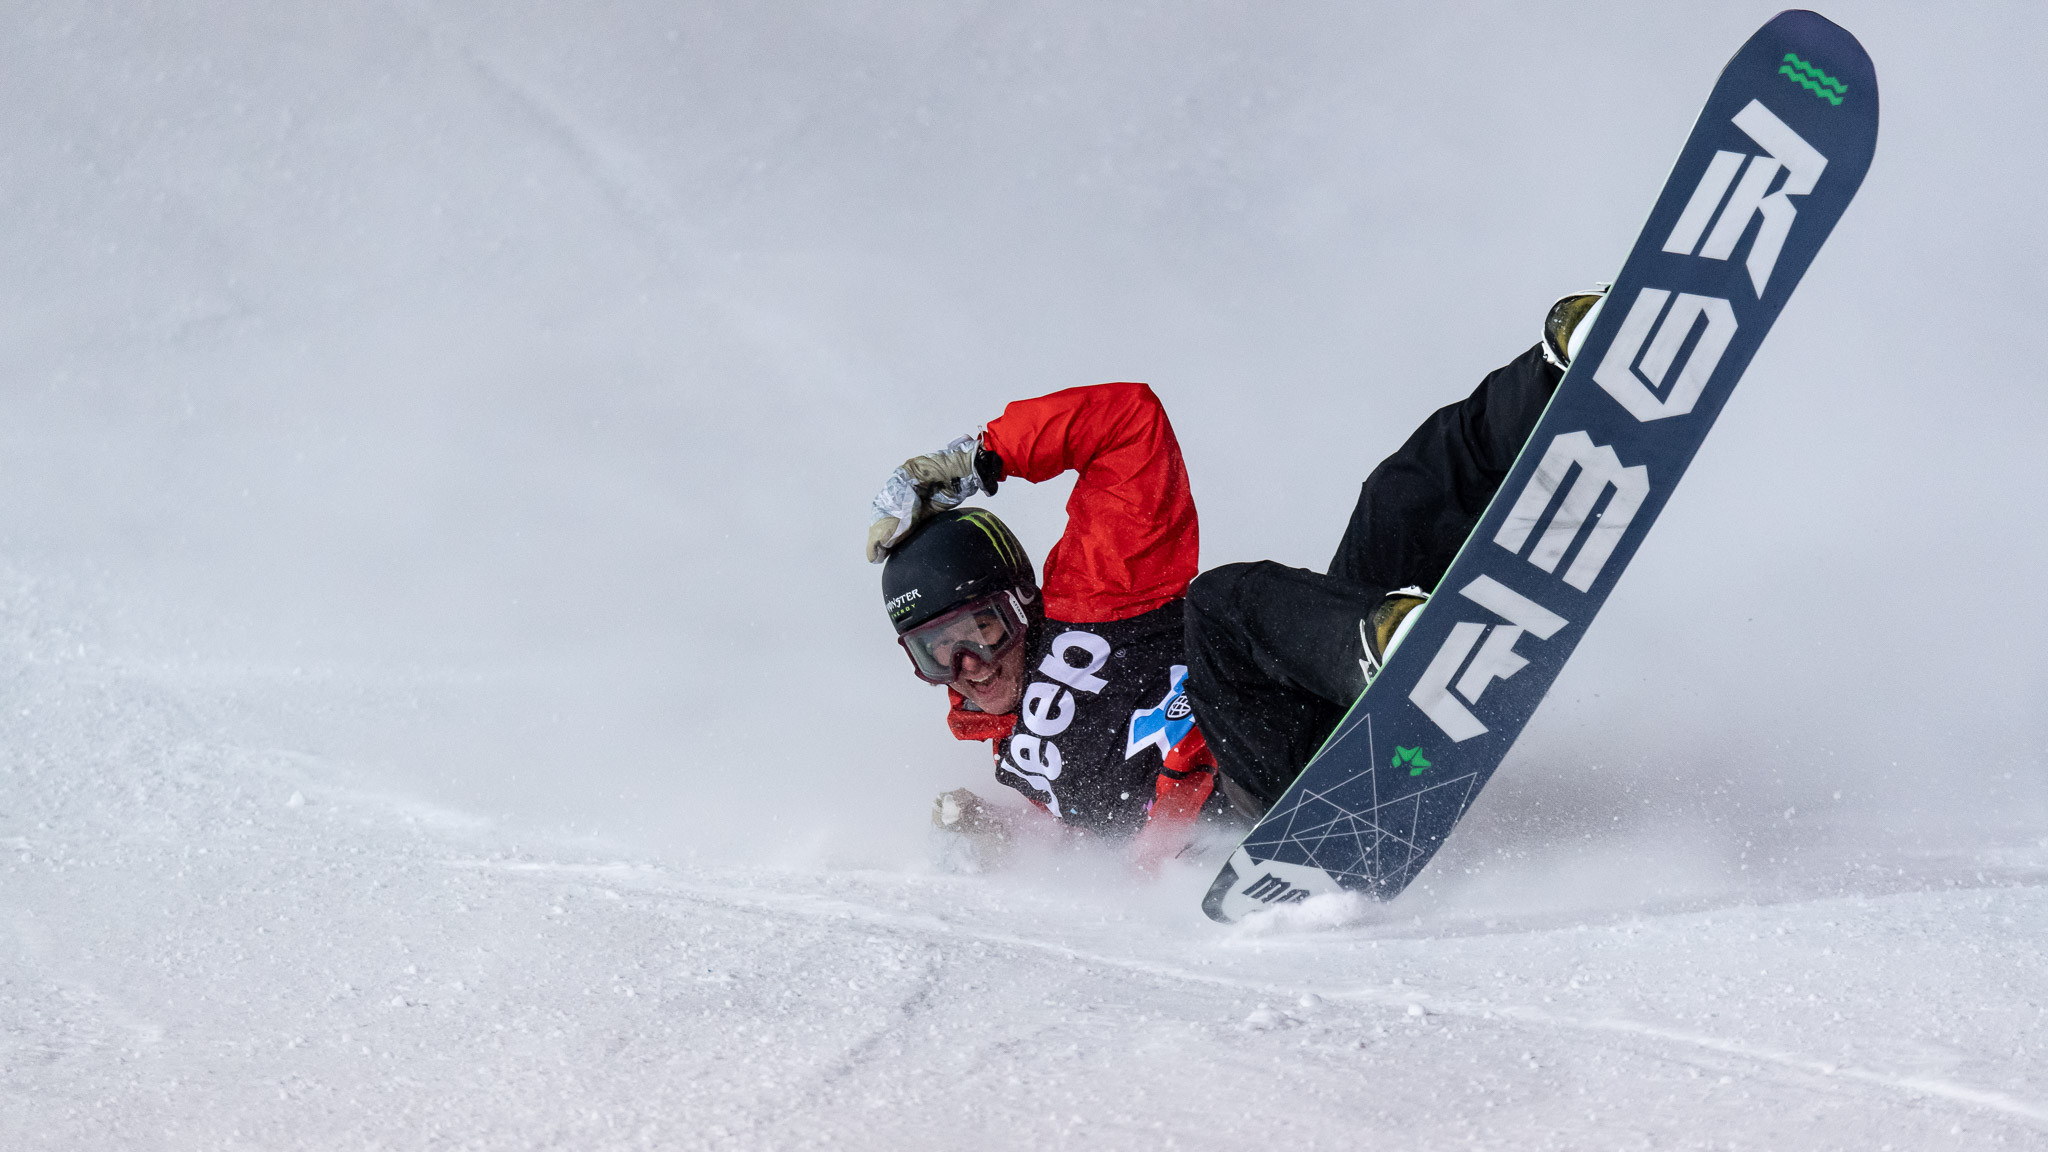 Day 3 at X Games Aspen 2019